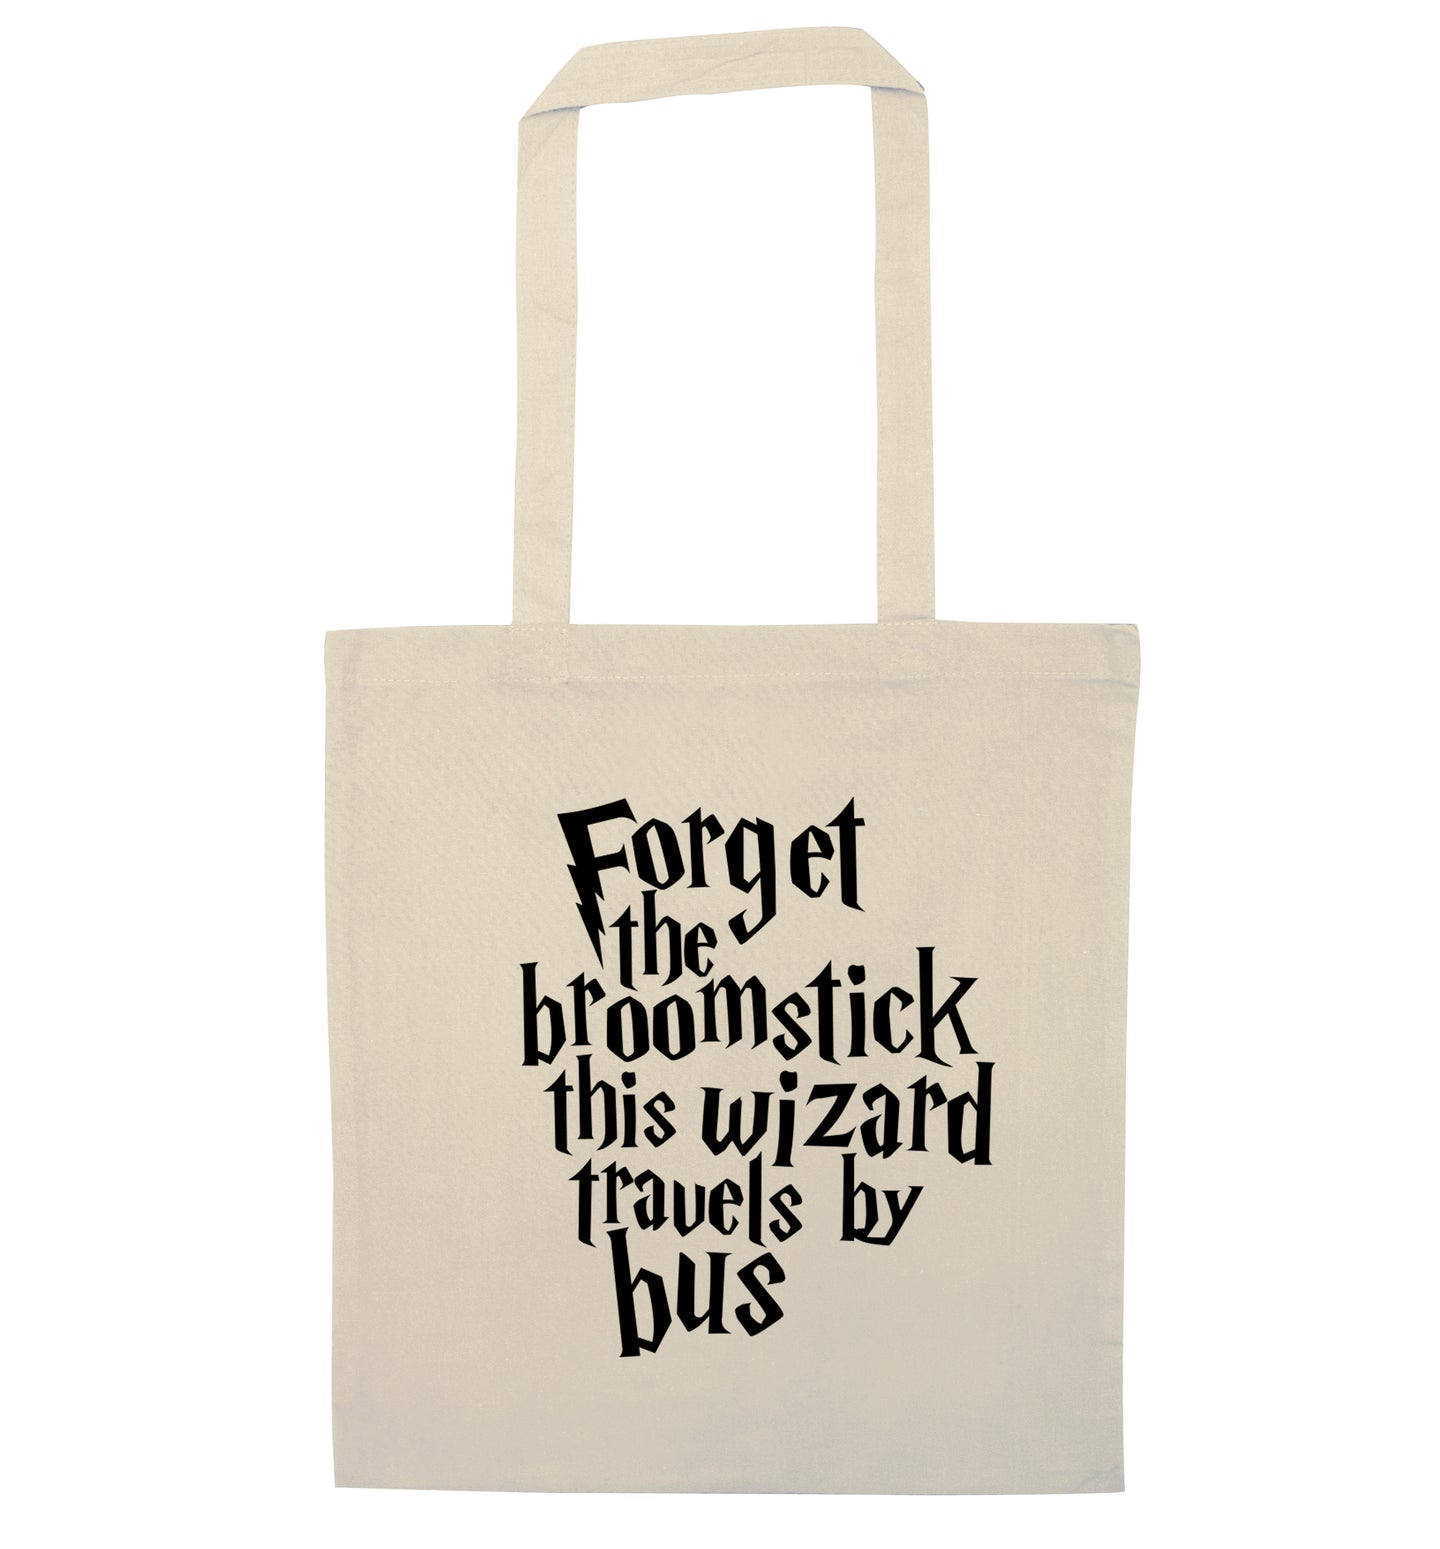 Forget the broomstick this wizard travels by bus natural tote bag